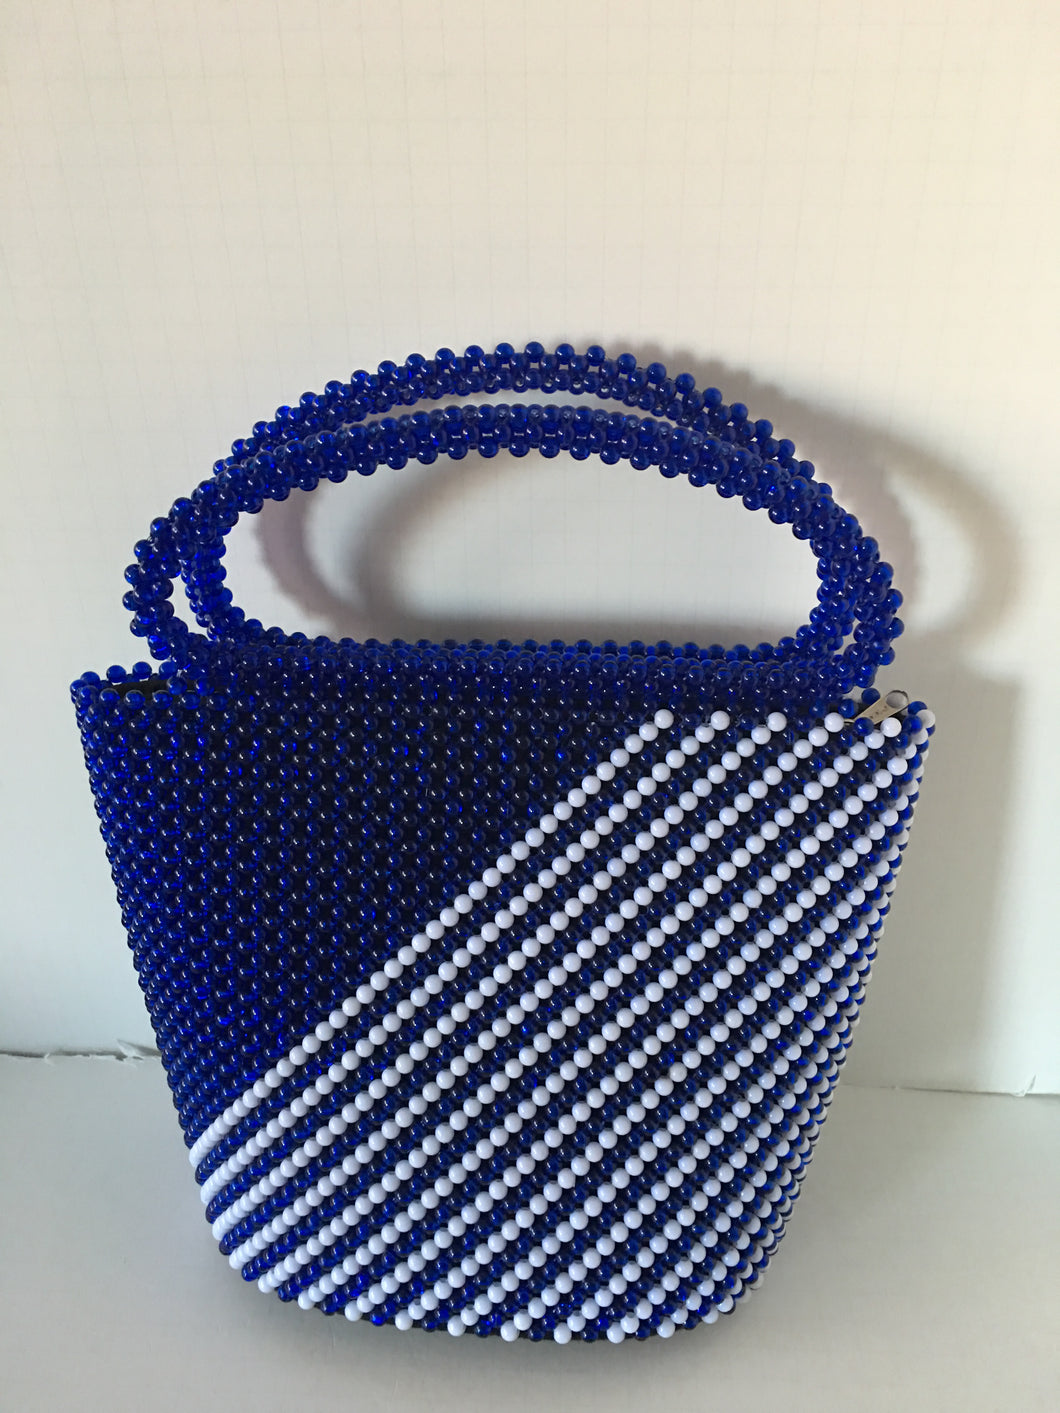 Blue and White Hand Crafted beaded Handbag.